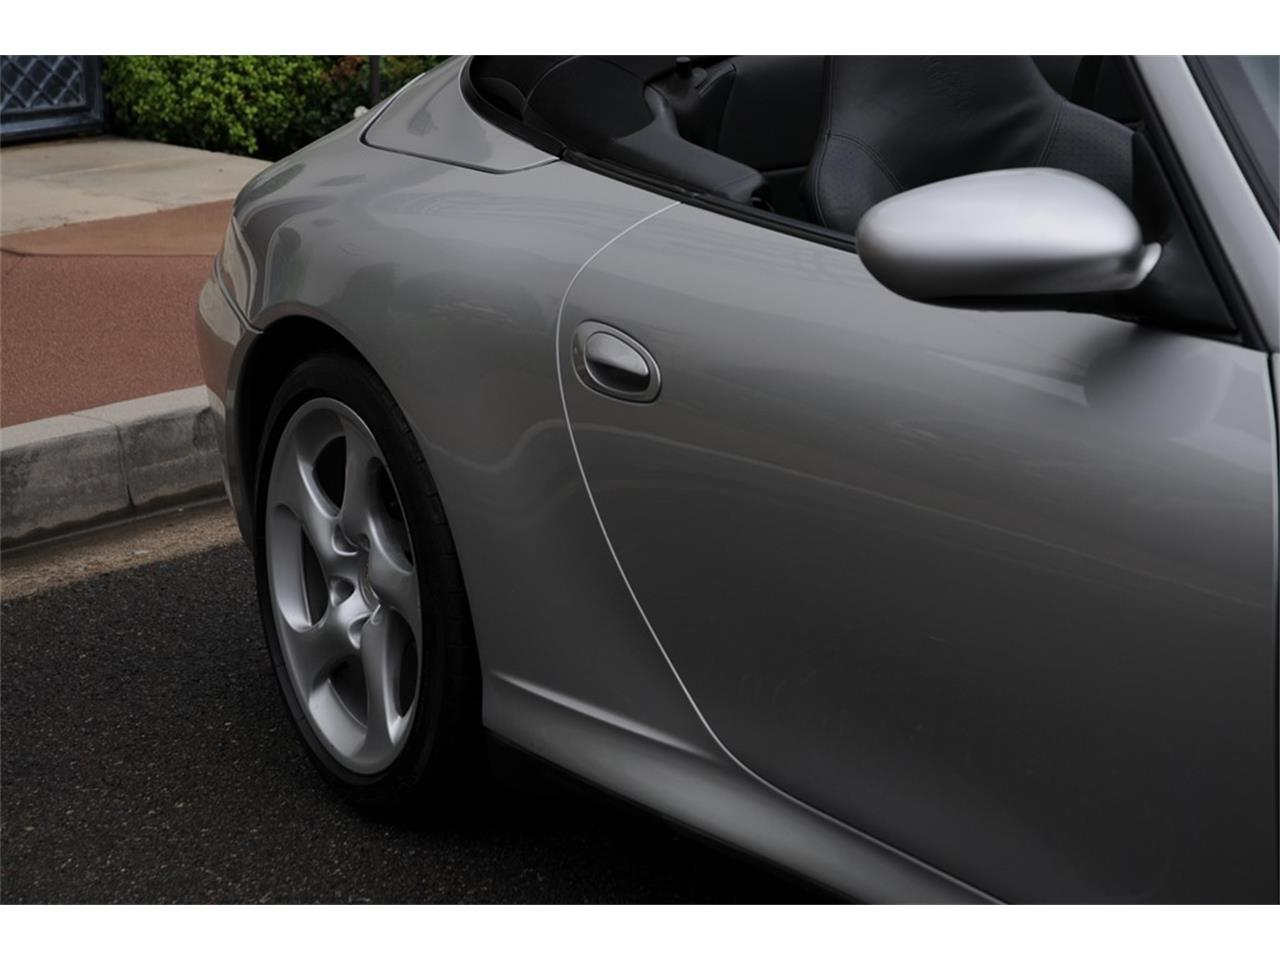 Large Picture of 2004 Porsche 911 Carrera 4S Cabriolet located in California Offered by Star European Inc. - QK9K